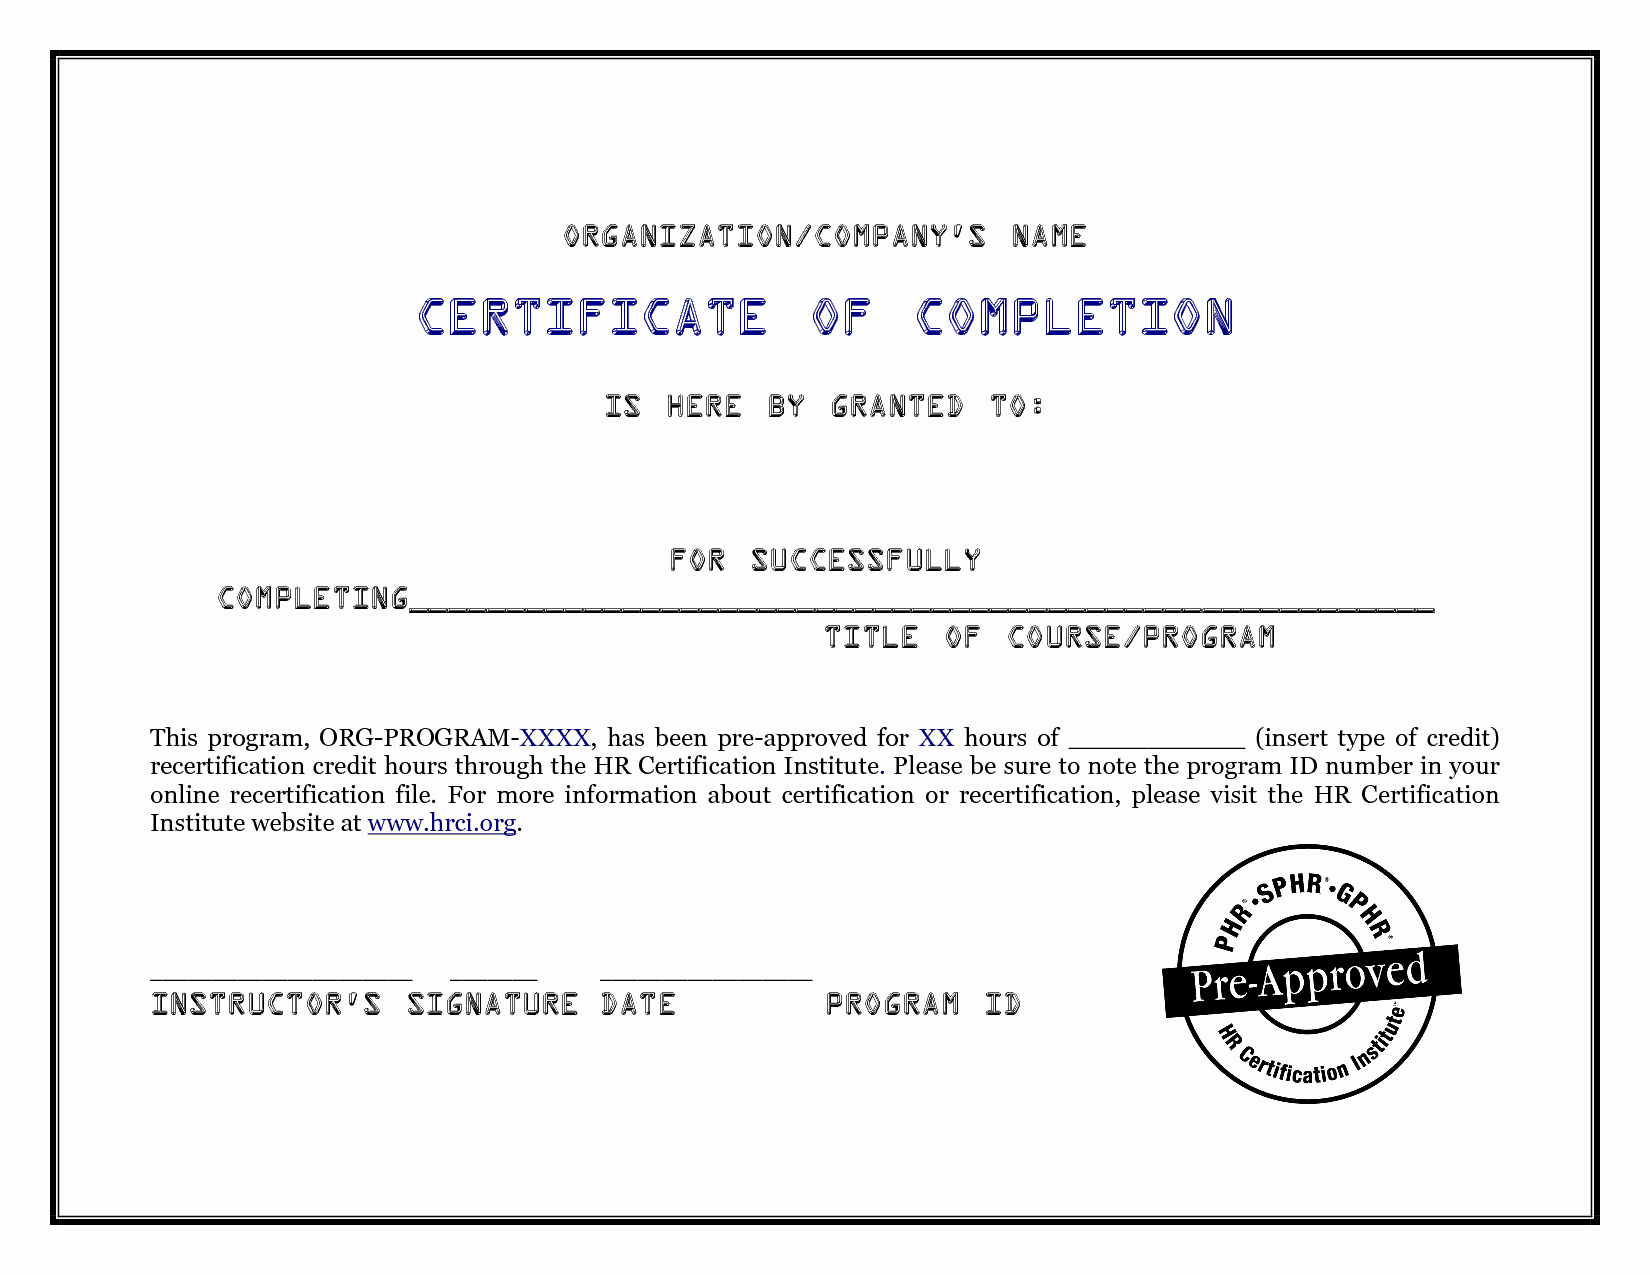 Construction Completion Certificate Template Elegant 10 Certificate Of Pletion Templates Word Excel Pdf